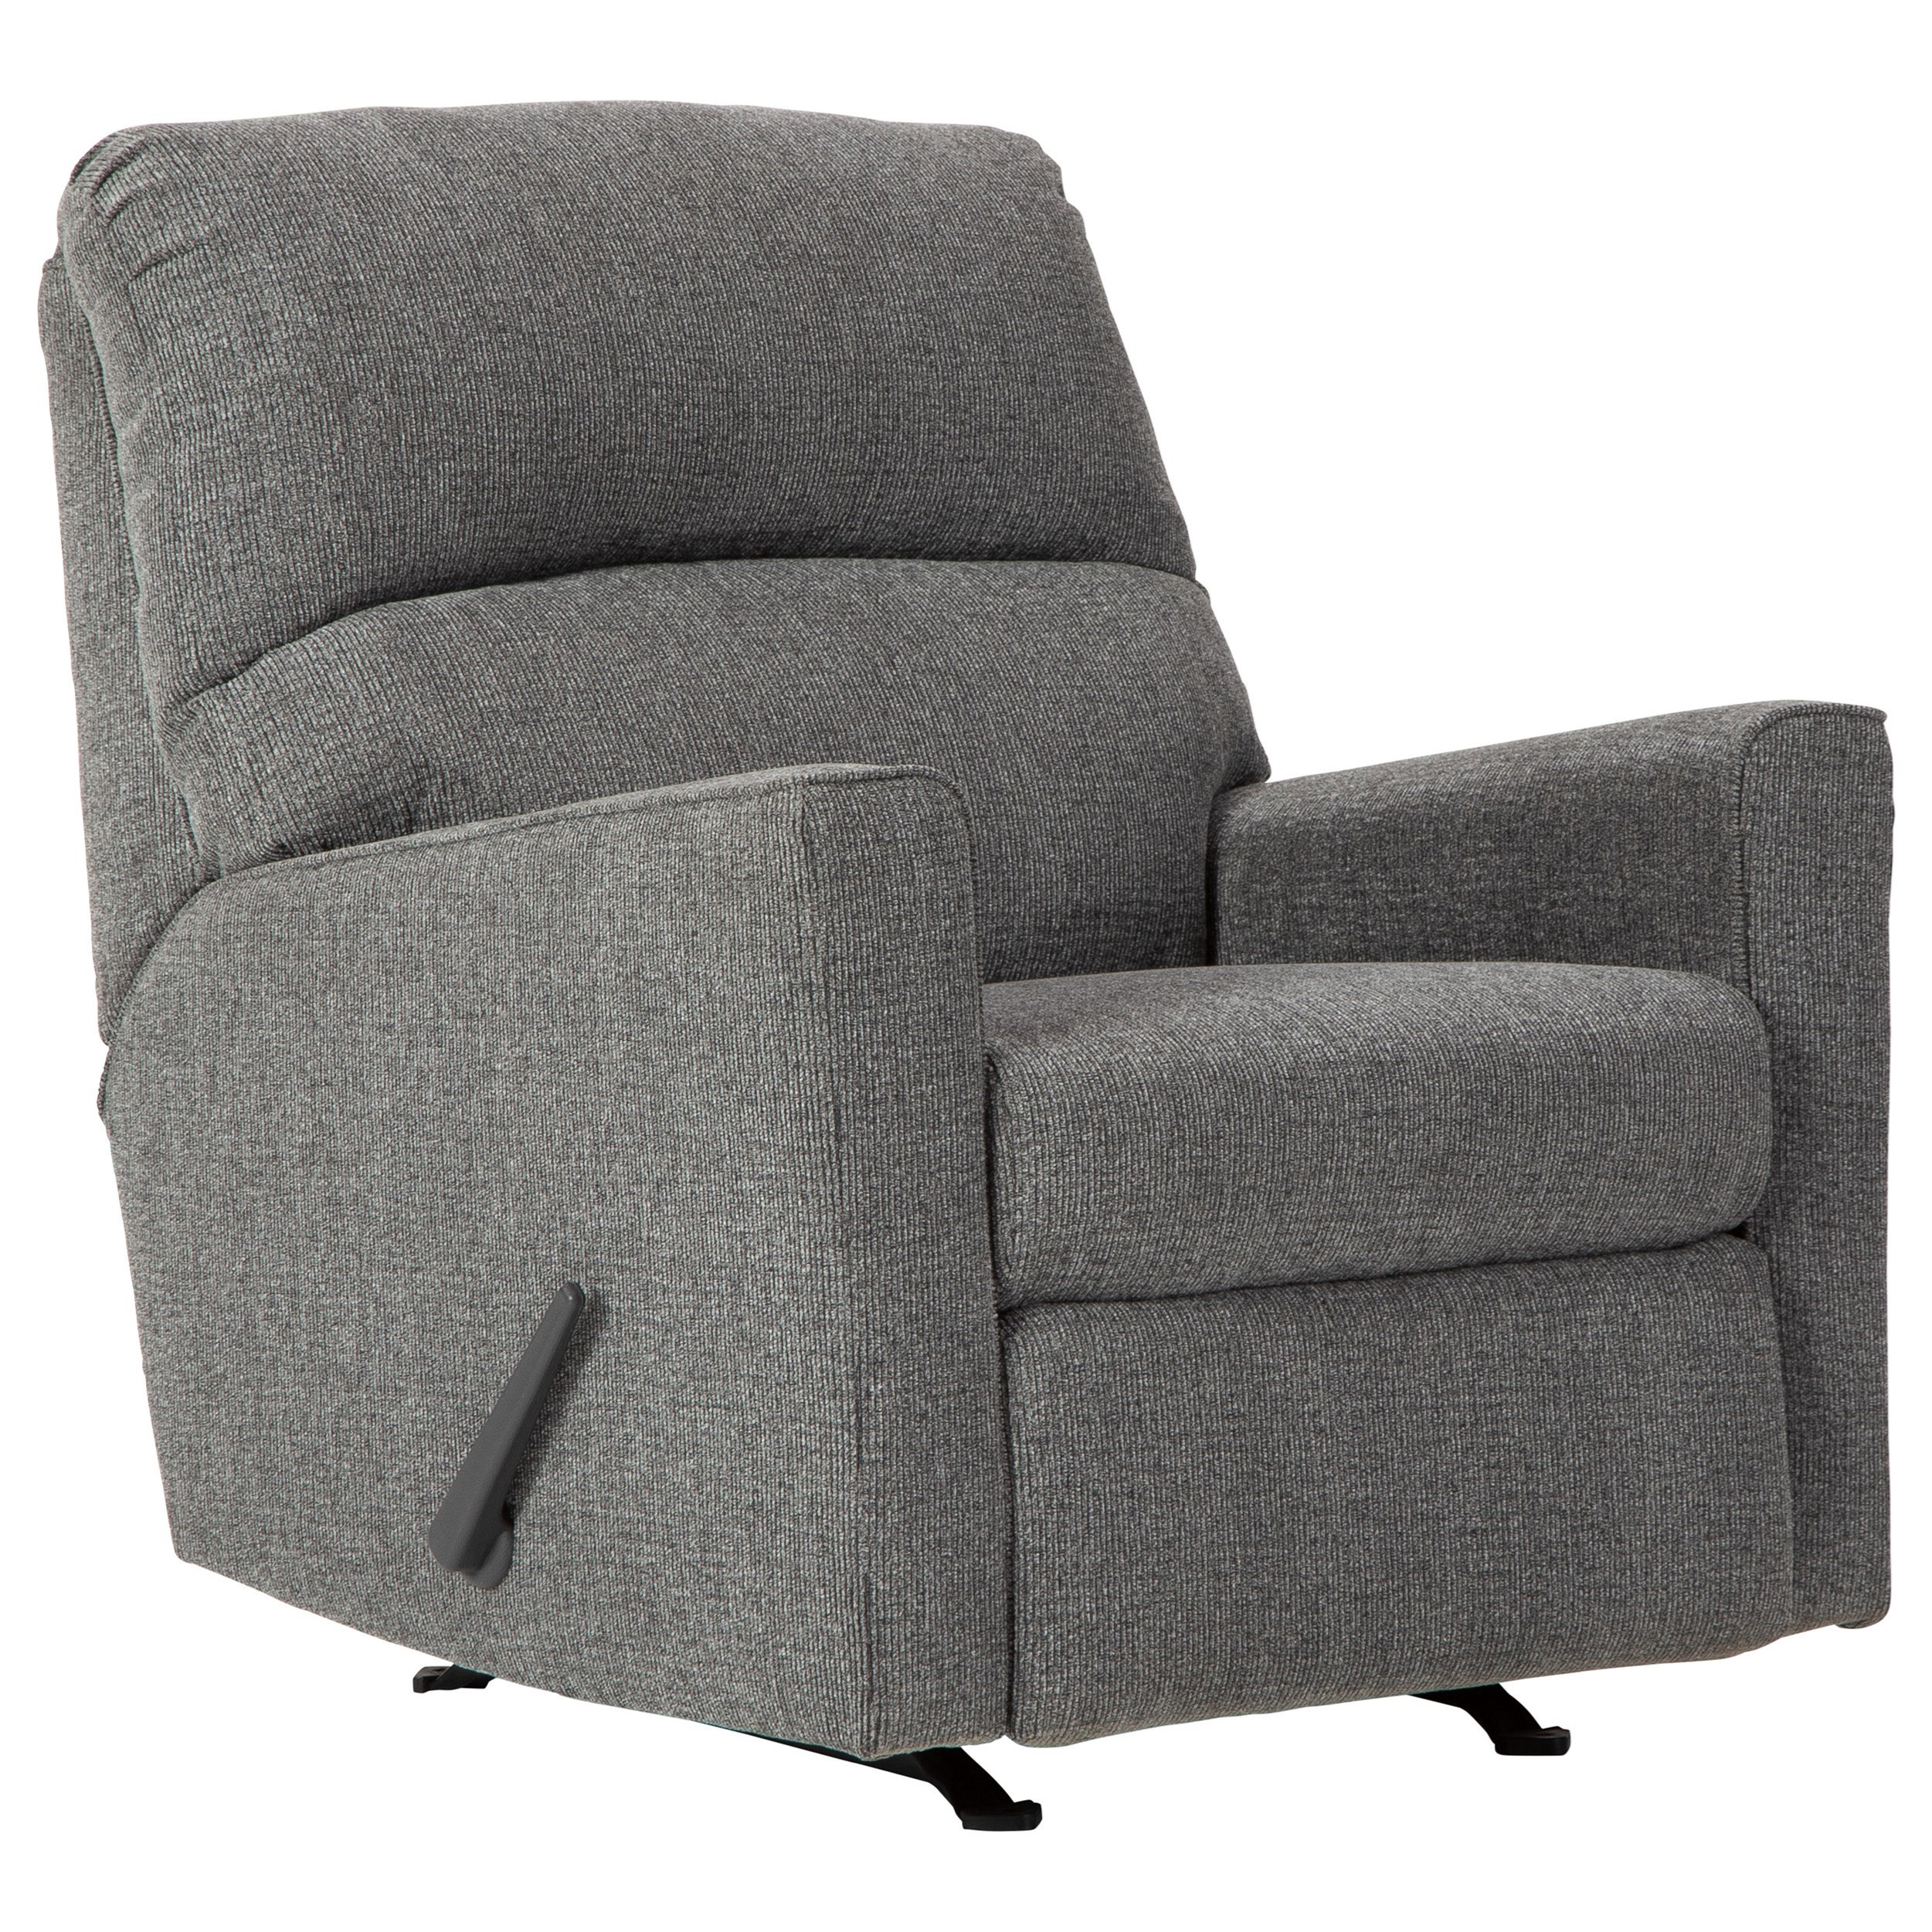 Dalhart Rocker Recliner by Benchcraft at Beck's Furniture